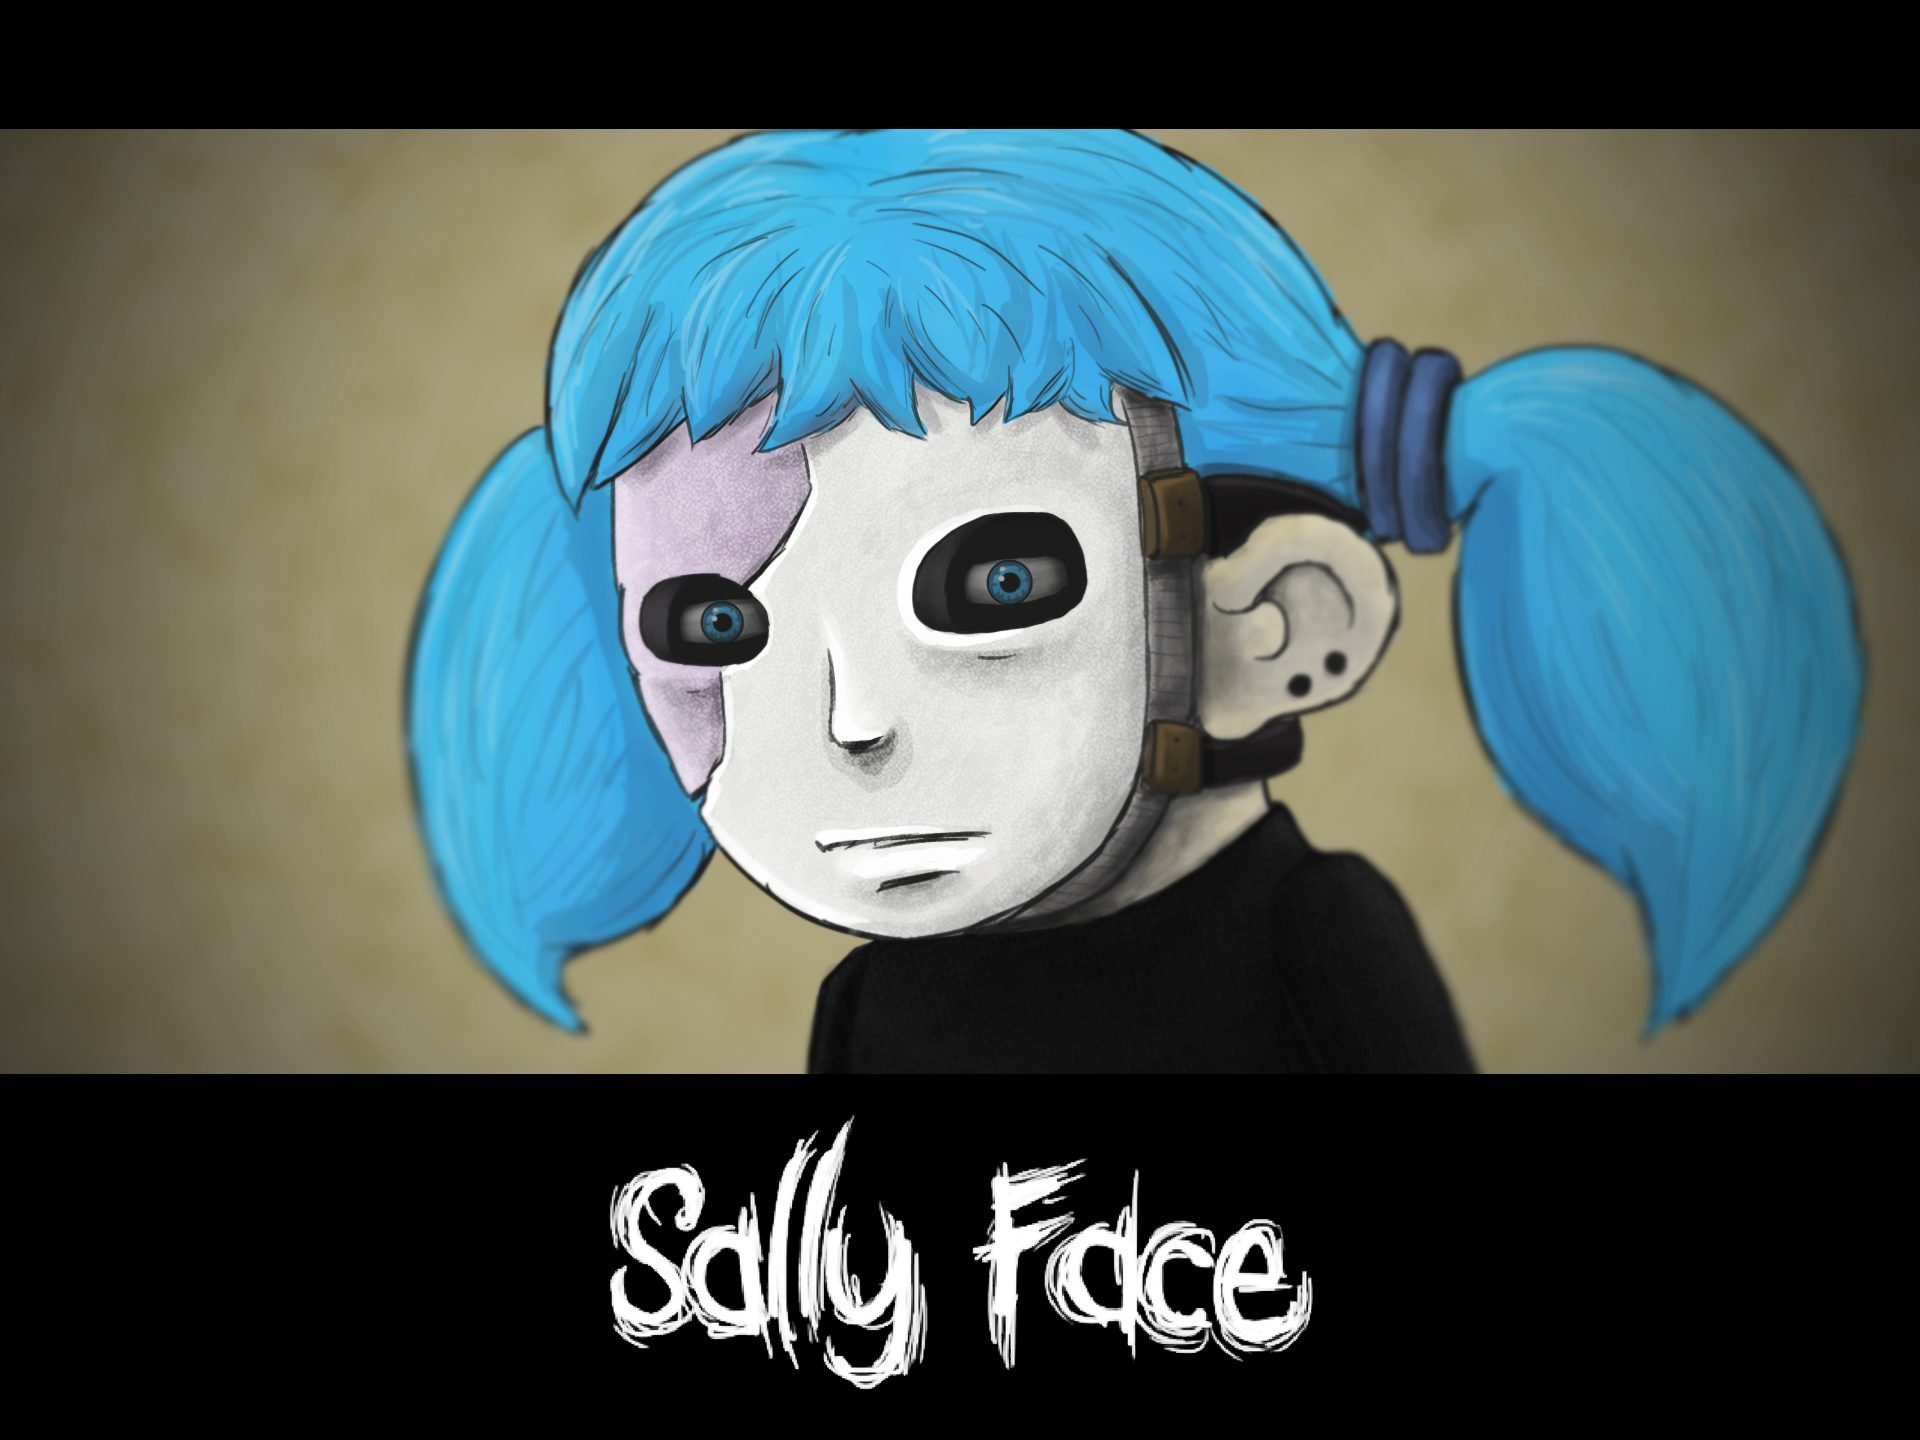 Sally Face Dark Episodic Adventure Needs Your Support On Indiegogo And Steam Greenlight Gaming